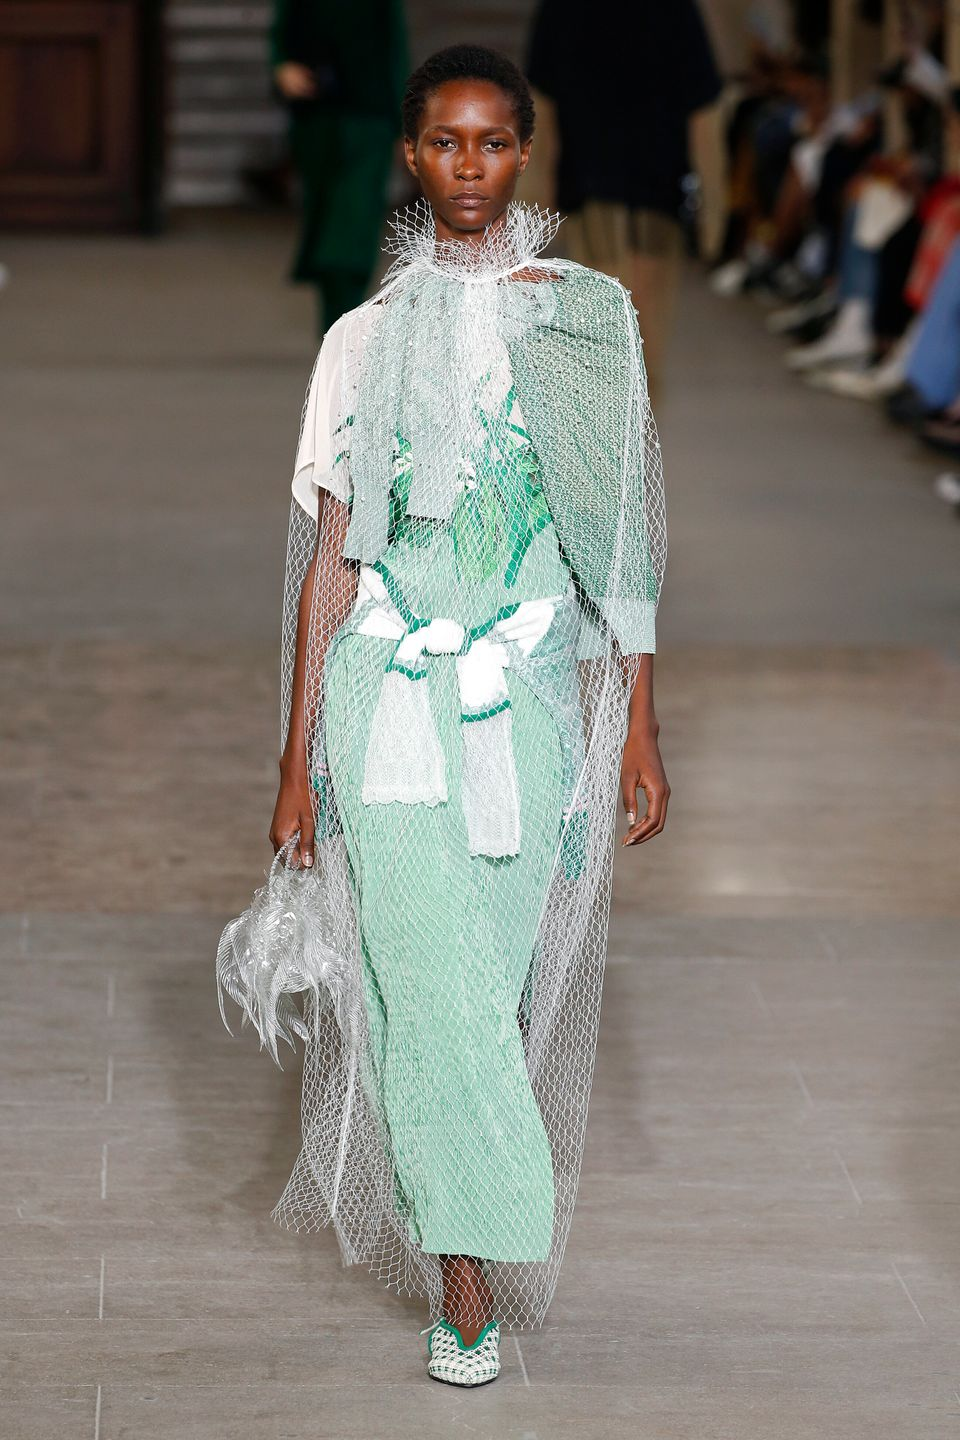 35 Of The Most Beautiful Dresses At Paris Fashion Week